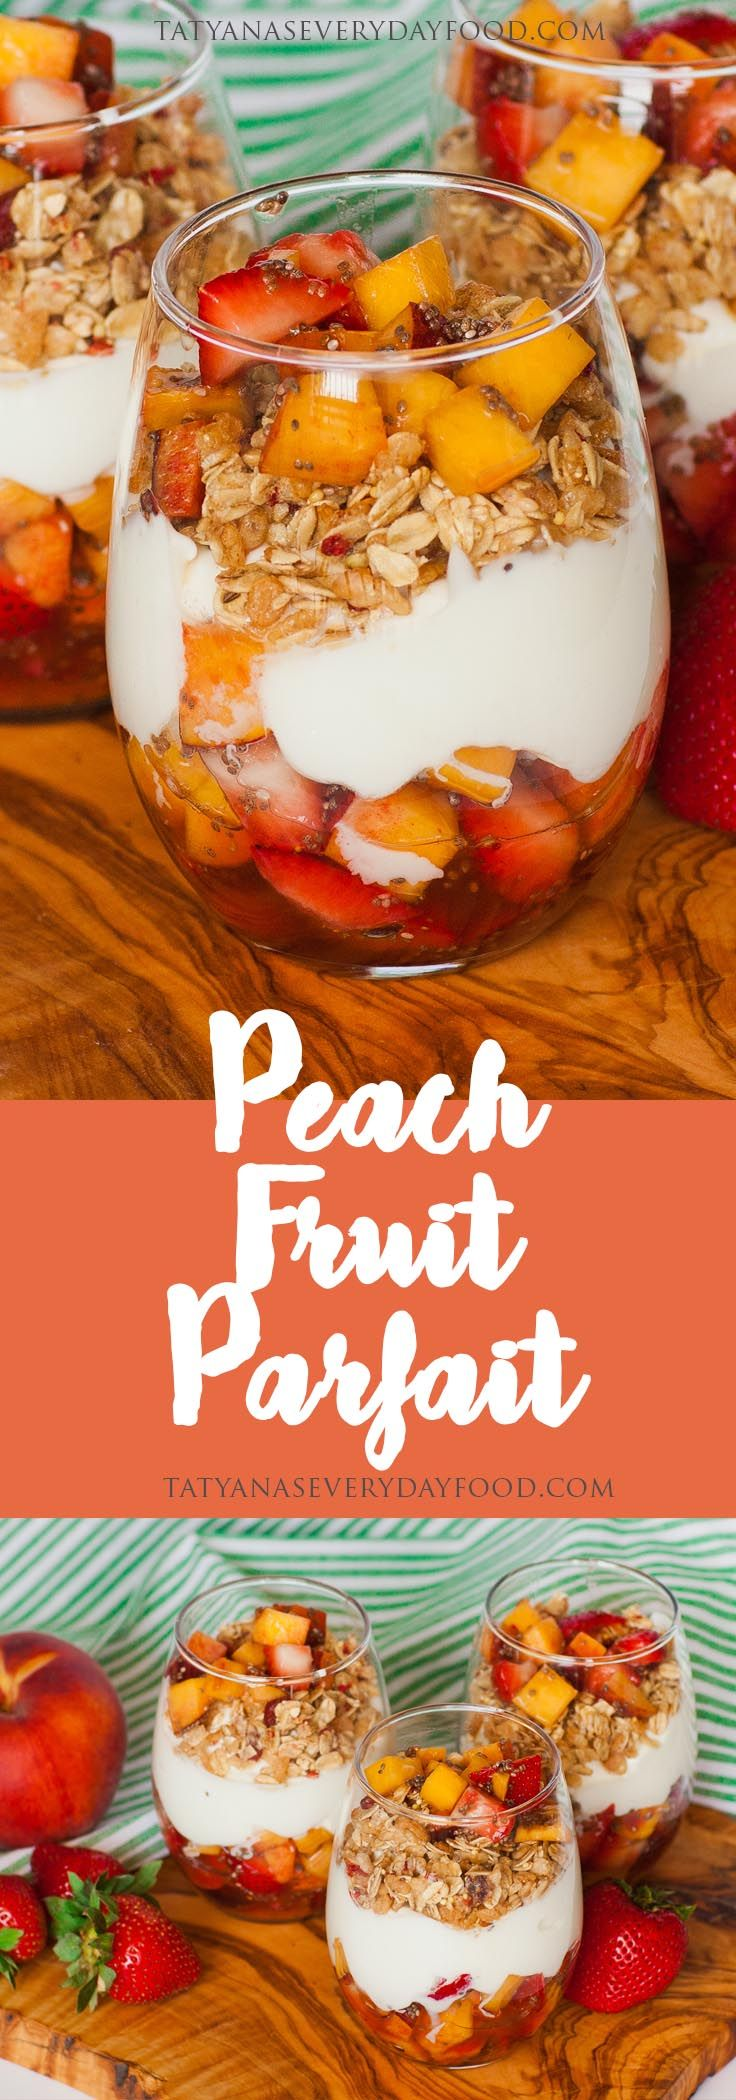 This super easy recipe for 'Peach Fruit Parfaits' doubles as a healthy, summer-time dessert and breakfast! For these fruit cups, I'm combining peaches and strawberries, coating them in honey and adding chia seeds! Feel free to add your favorite summer-time fruit to the mix. If you're making these ahead of time for breakfast, add the […]